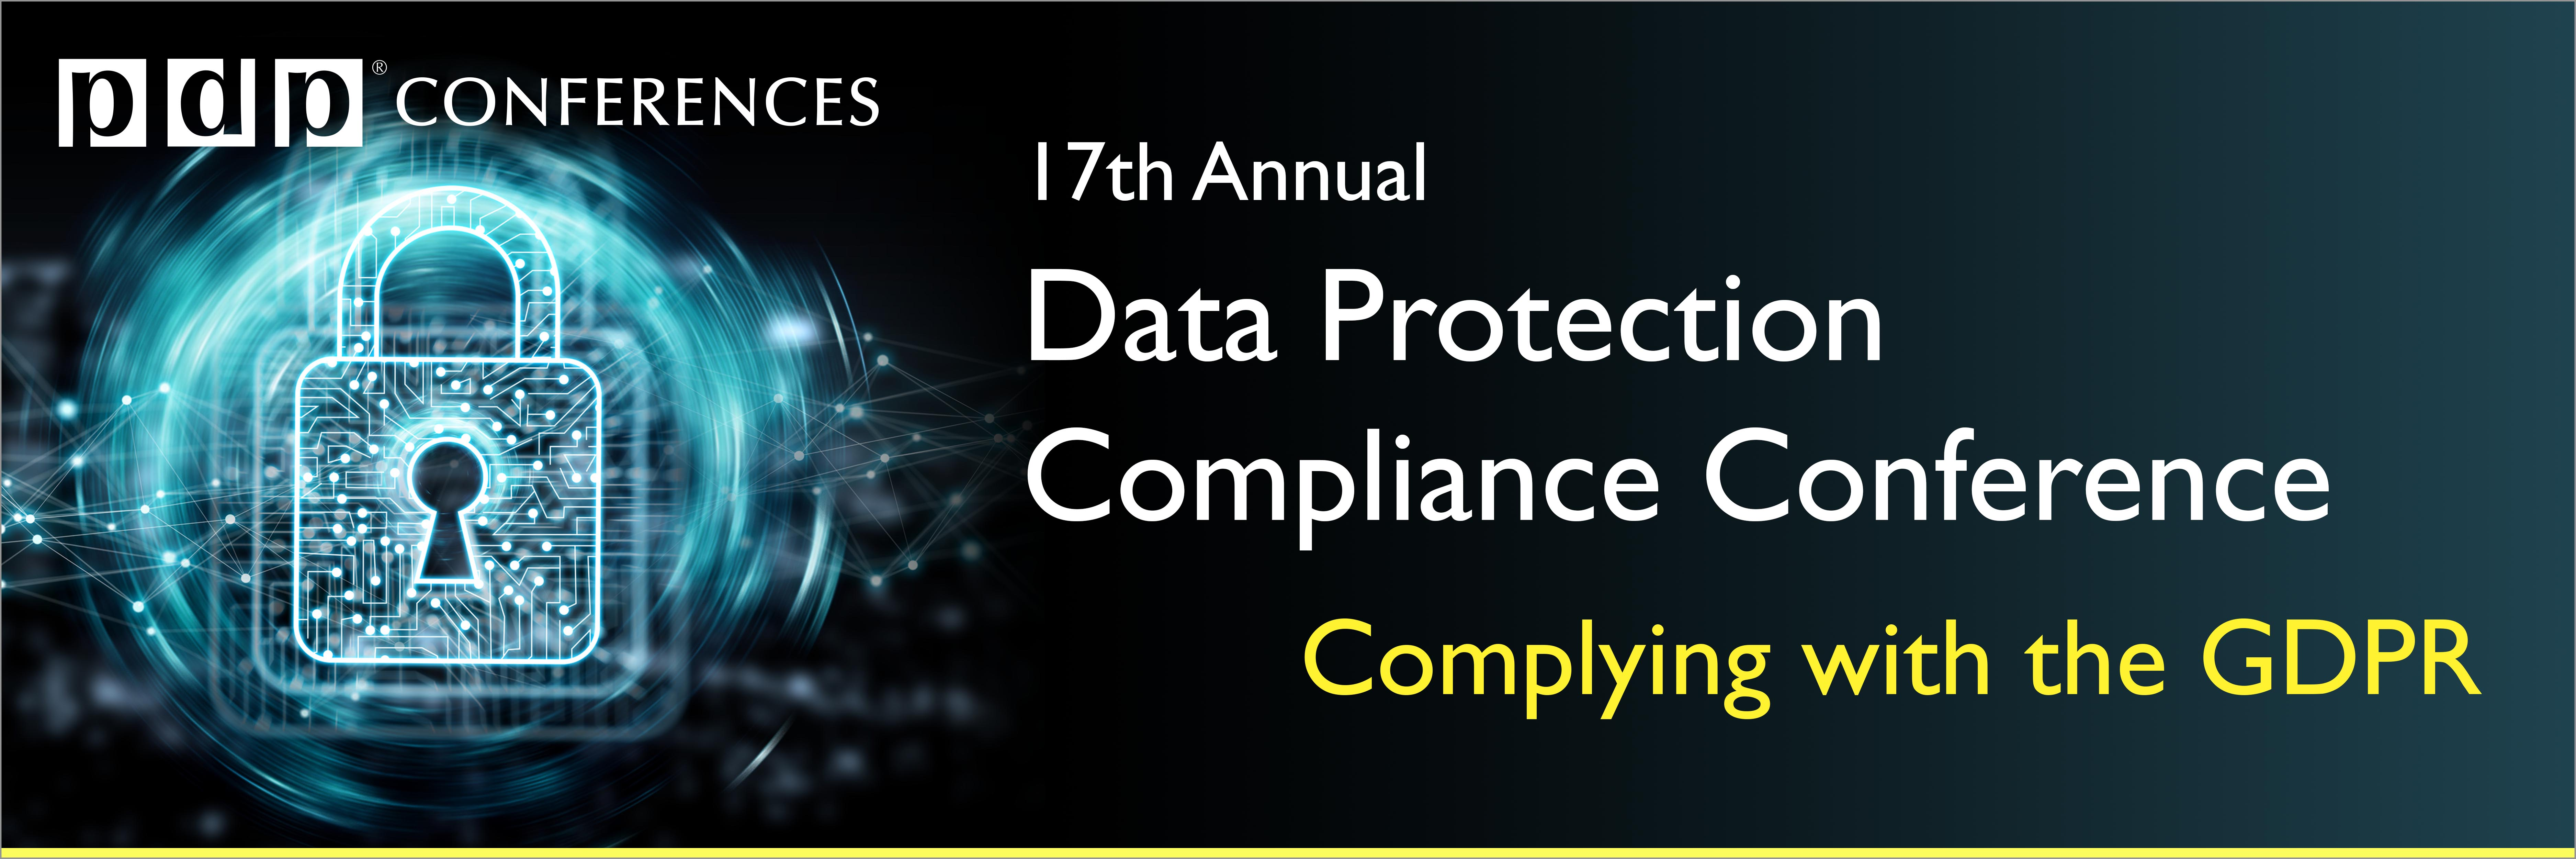 17th Annual Data Protection Compliance Conference